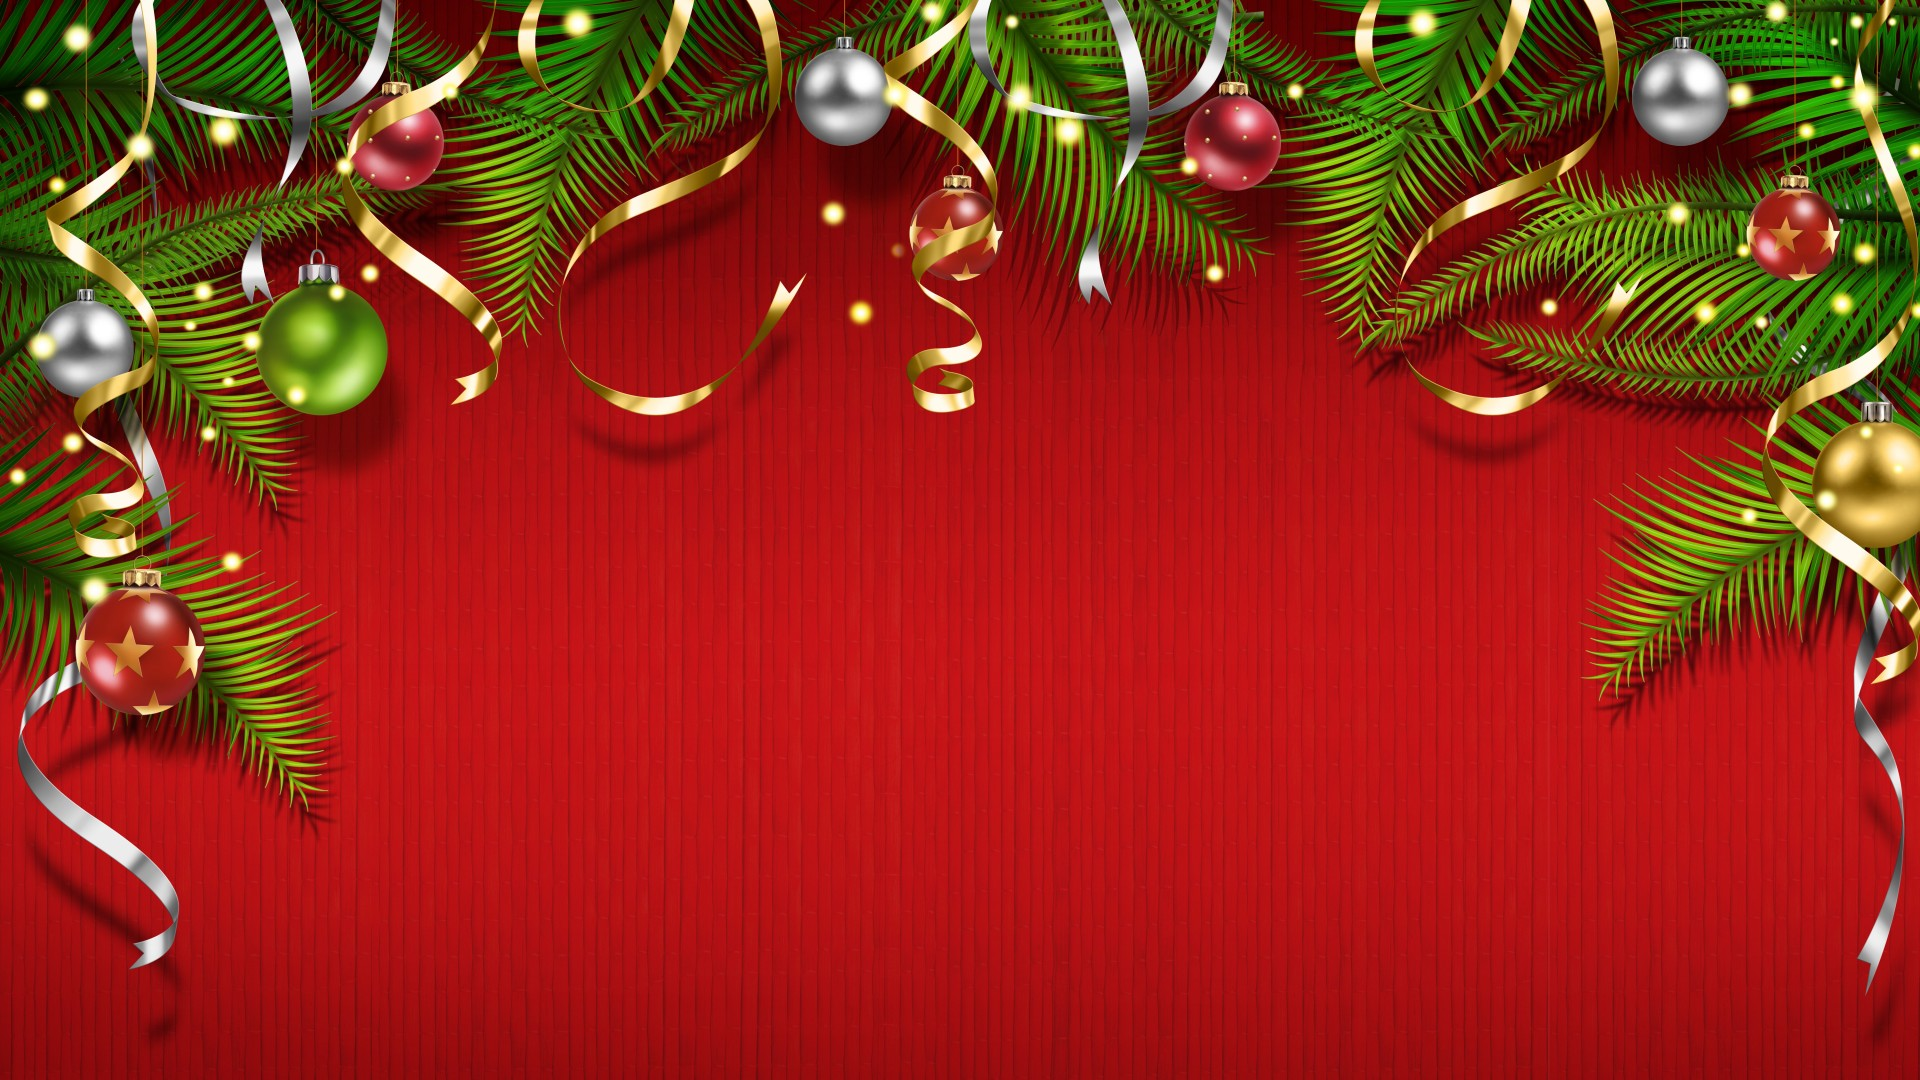 Download Christmas Wallpapers HD wallpaperwiki 1920x1080